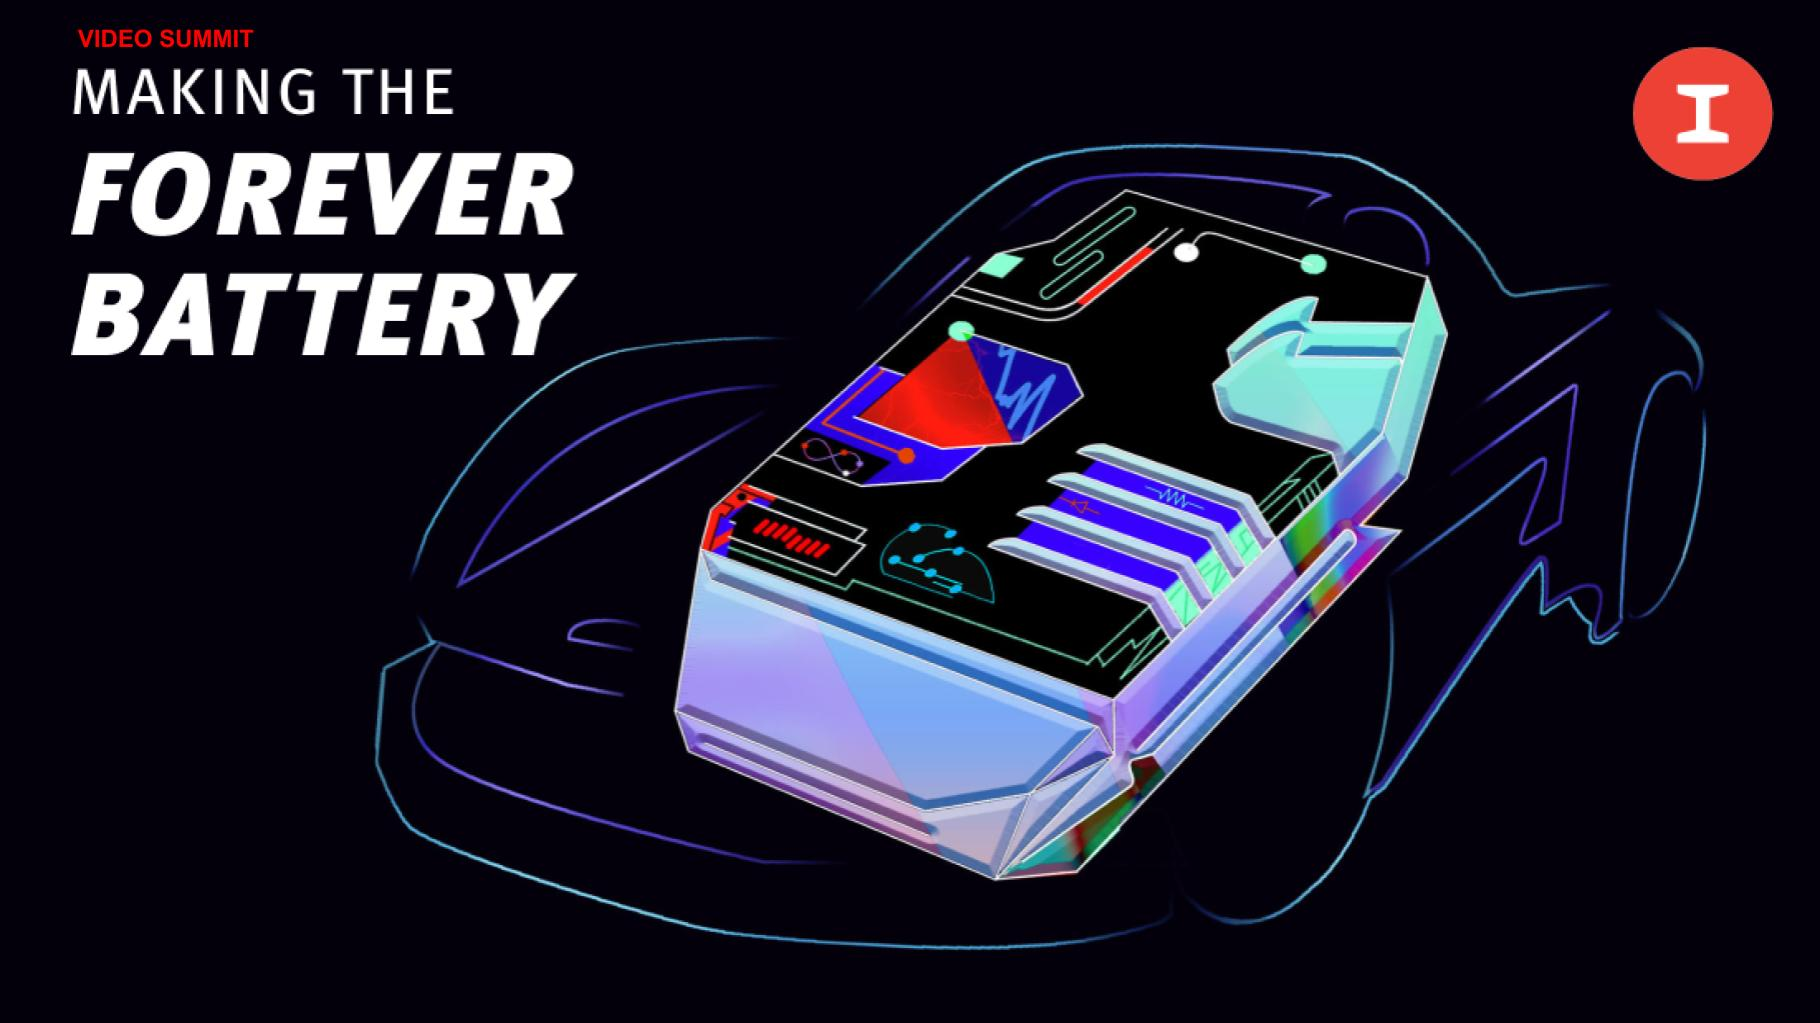 Making the Forever Battery